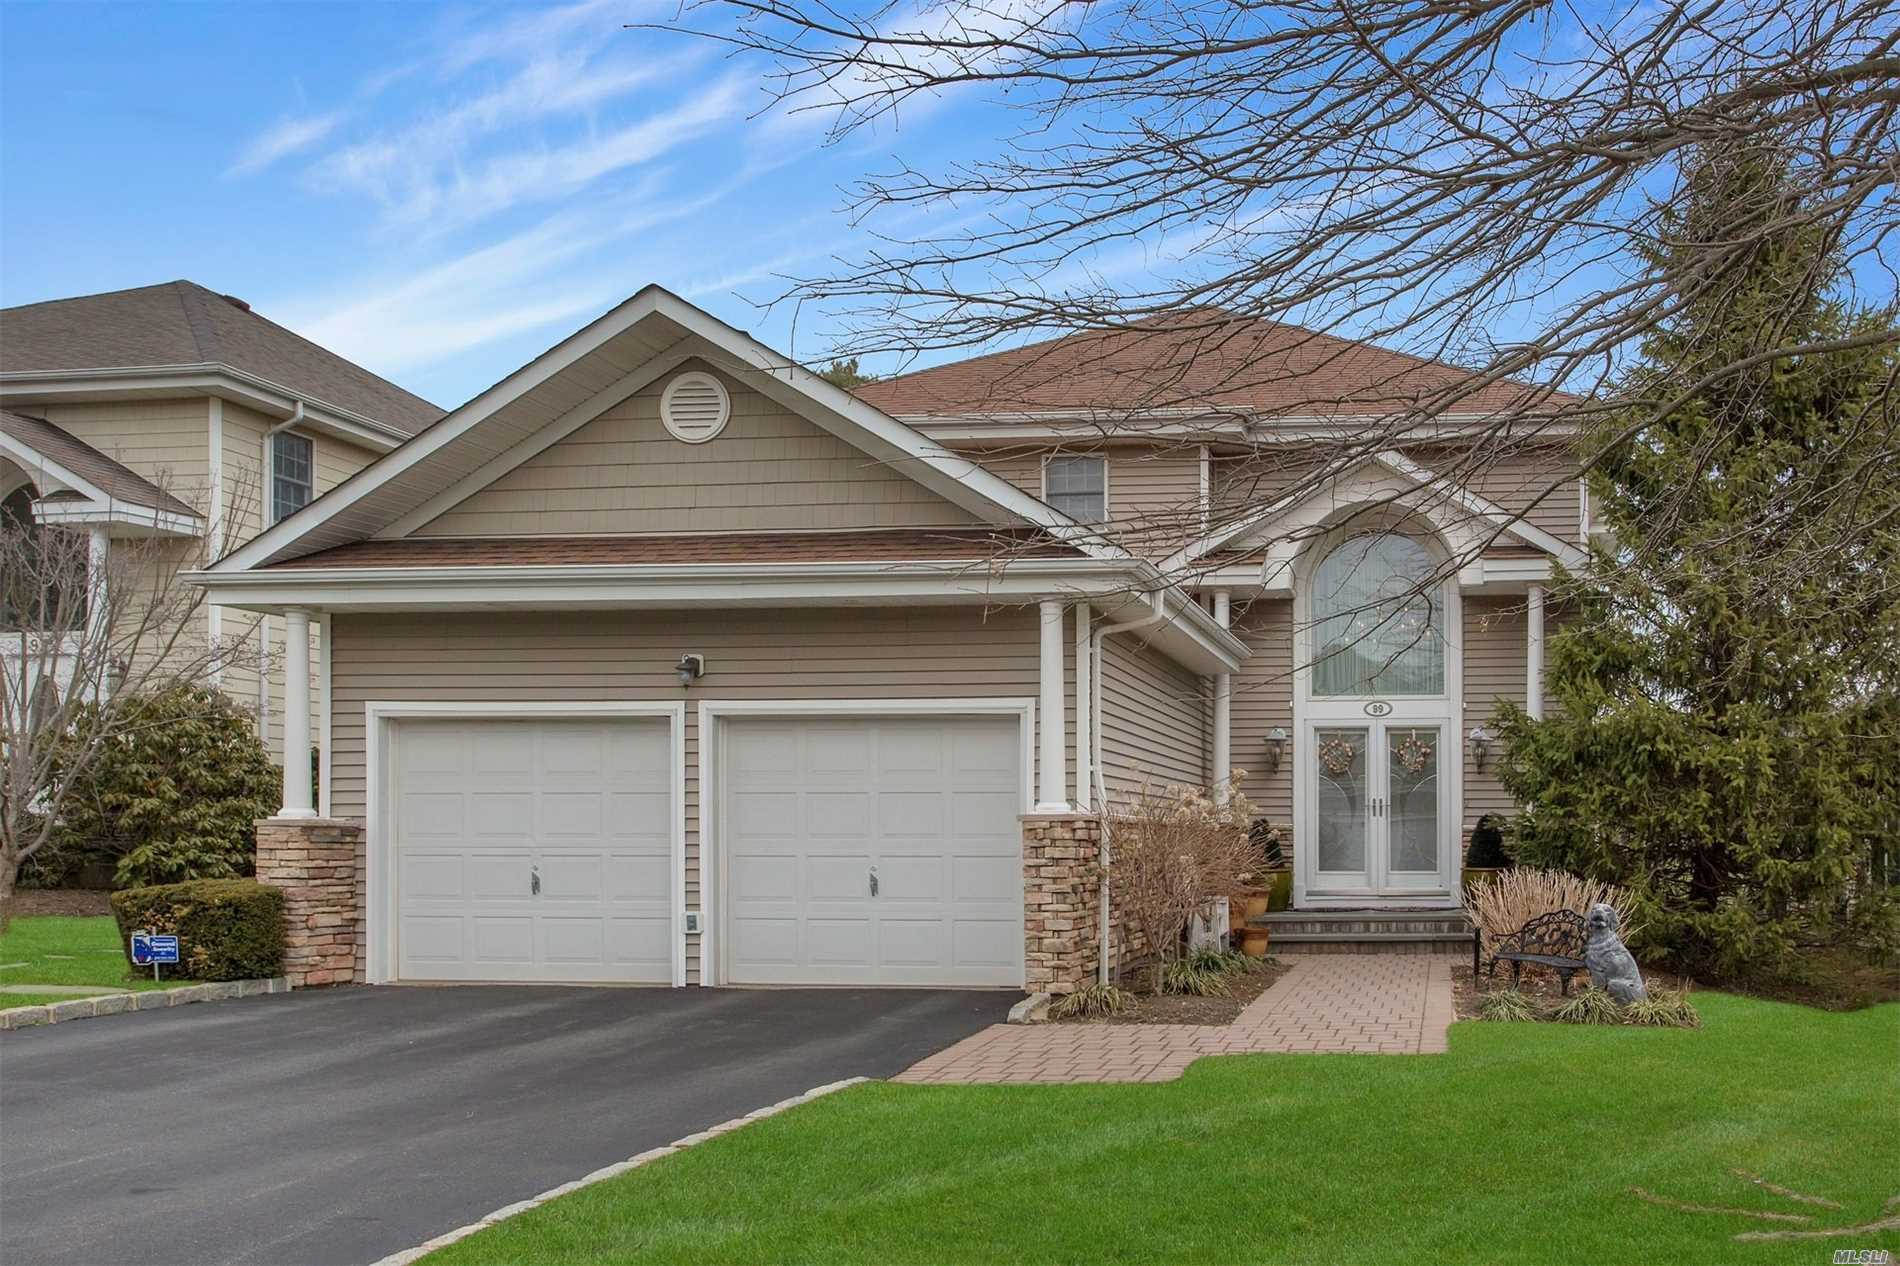 Photo of home for sale at 99 Redan Dr, Smithtown NY